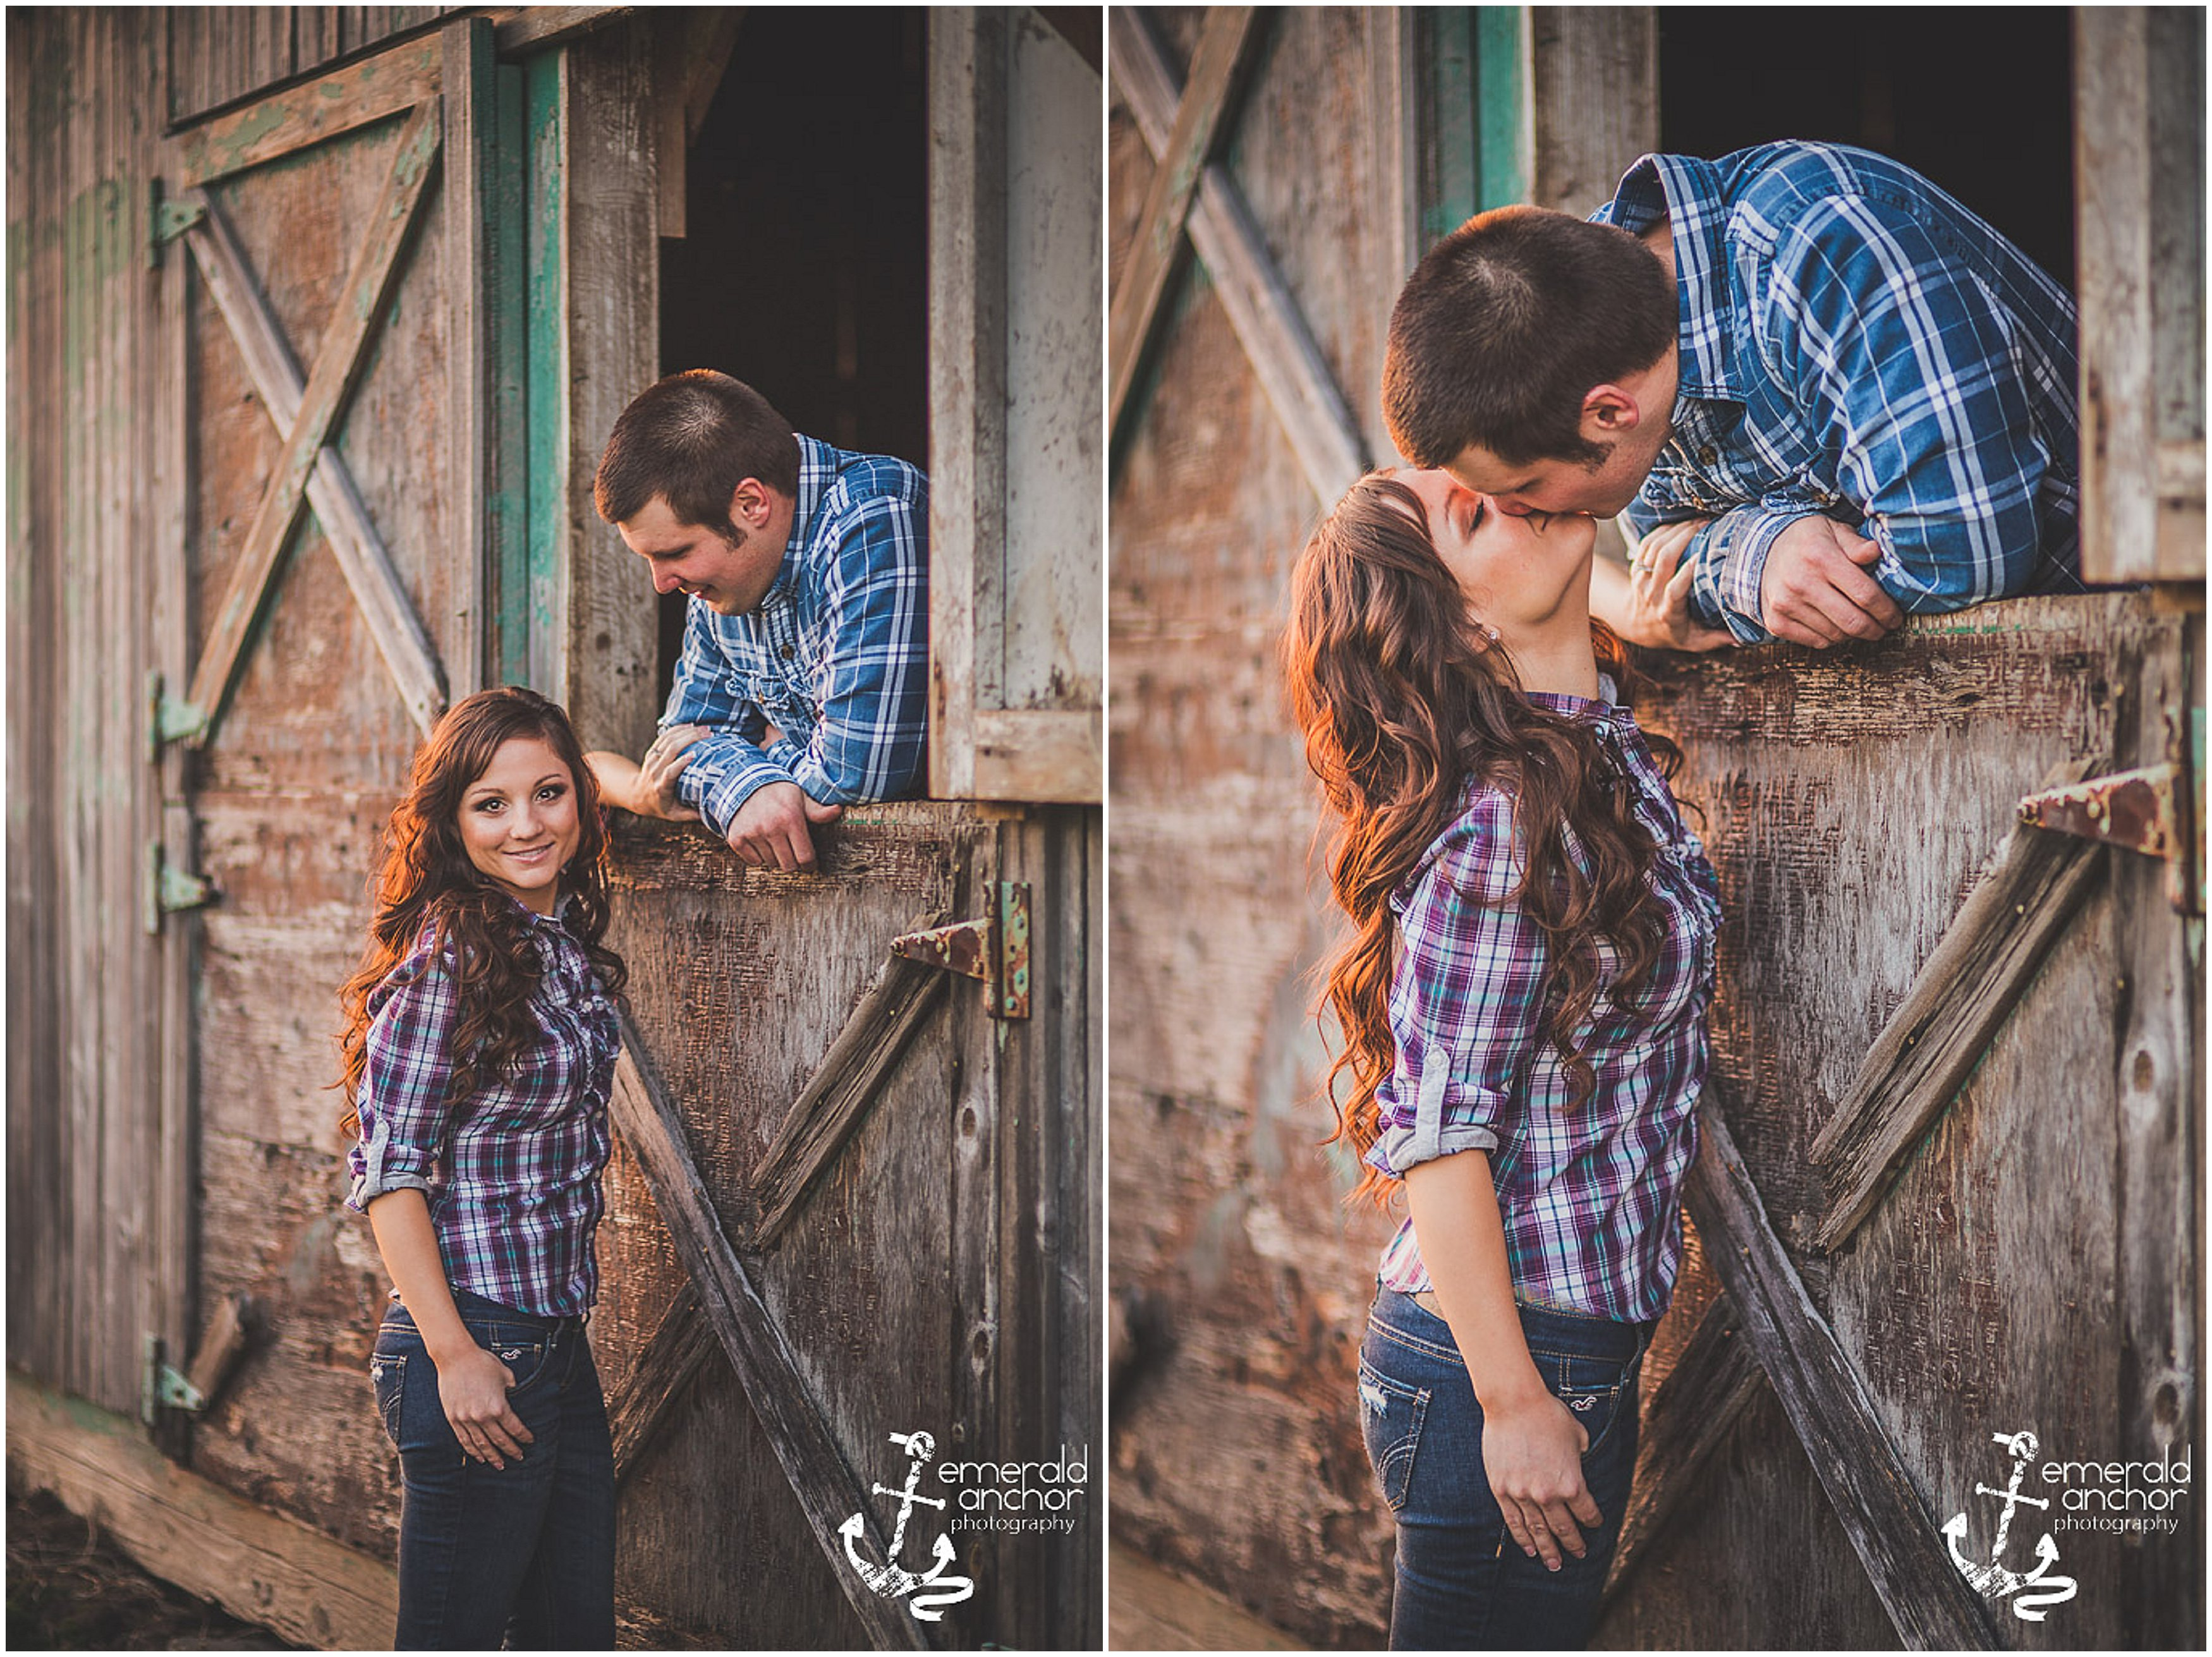 Emerald Anchor Photography Engagement Pictures (19)